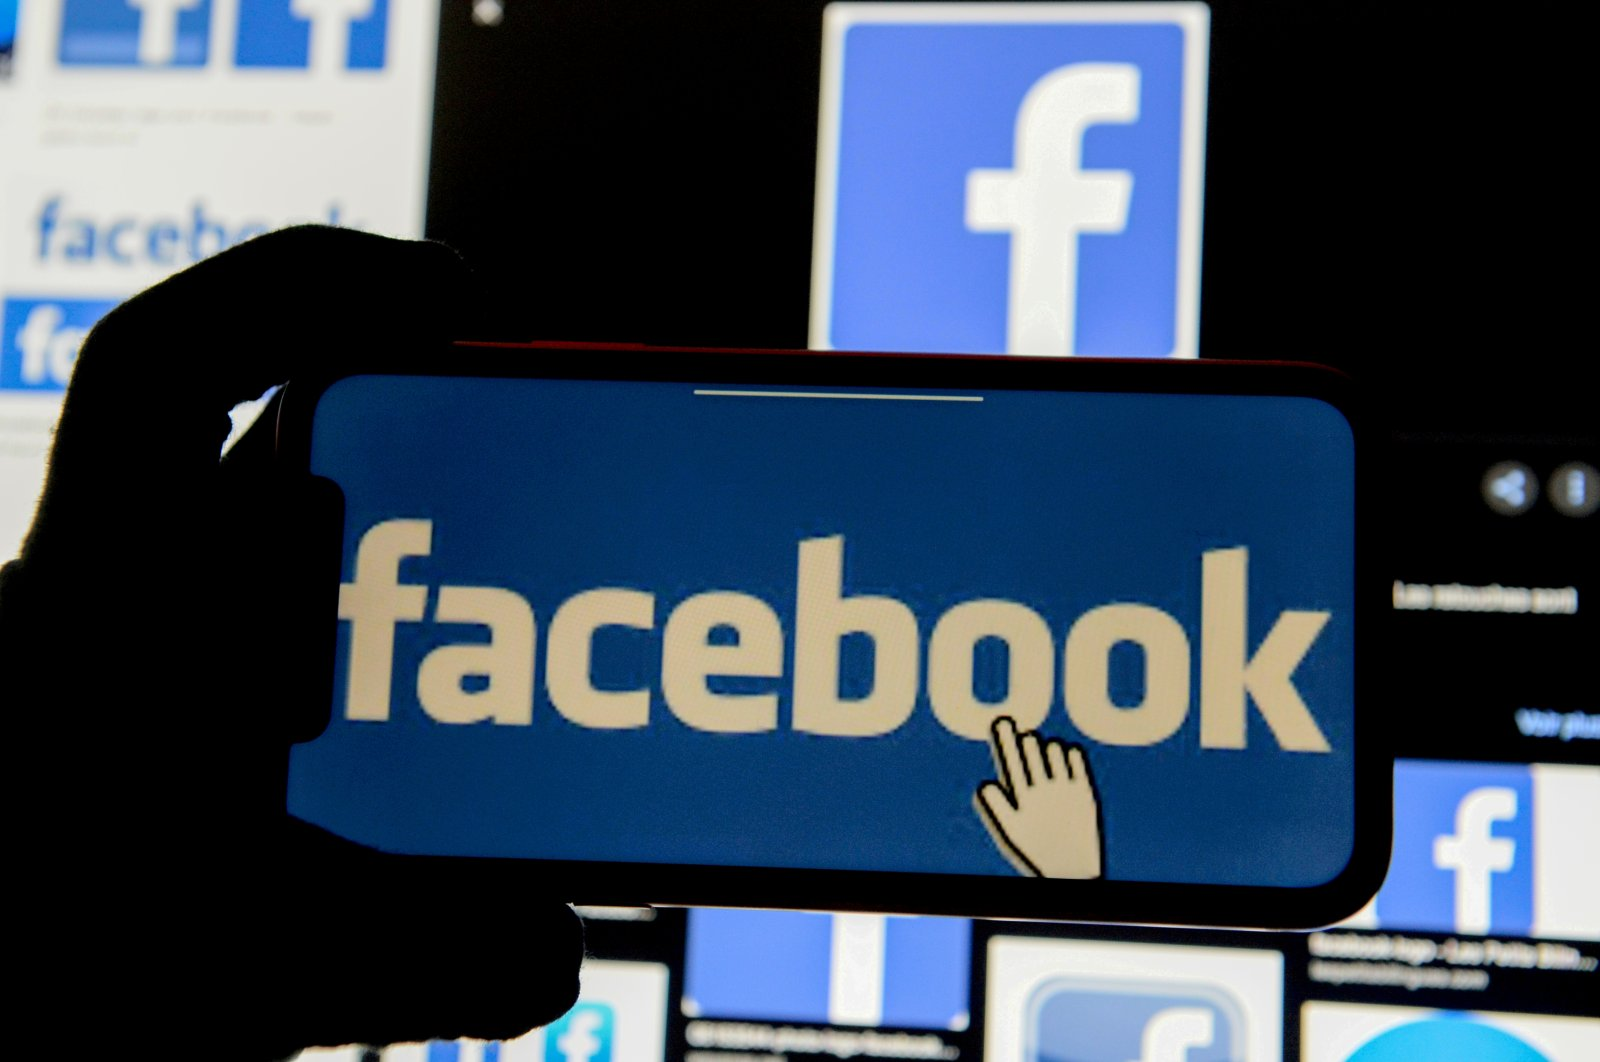 The Facebook logo is displayed on a mobile phone in this picture illustration, Dec. 2, 2019. (Reuters Photo)